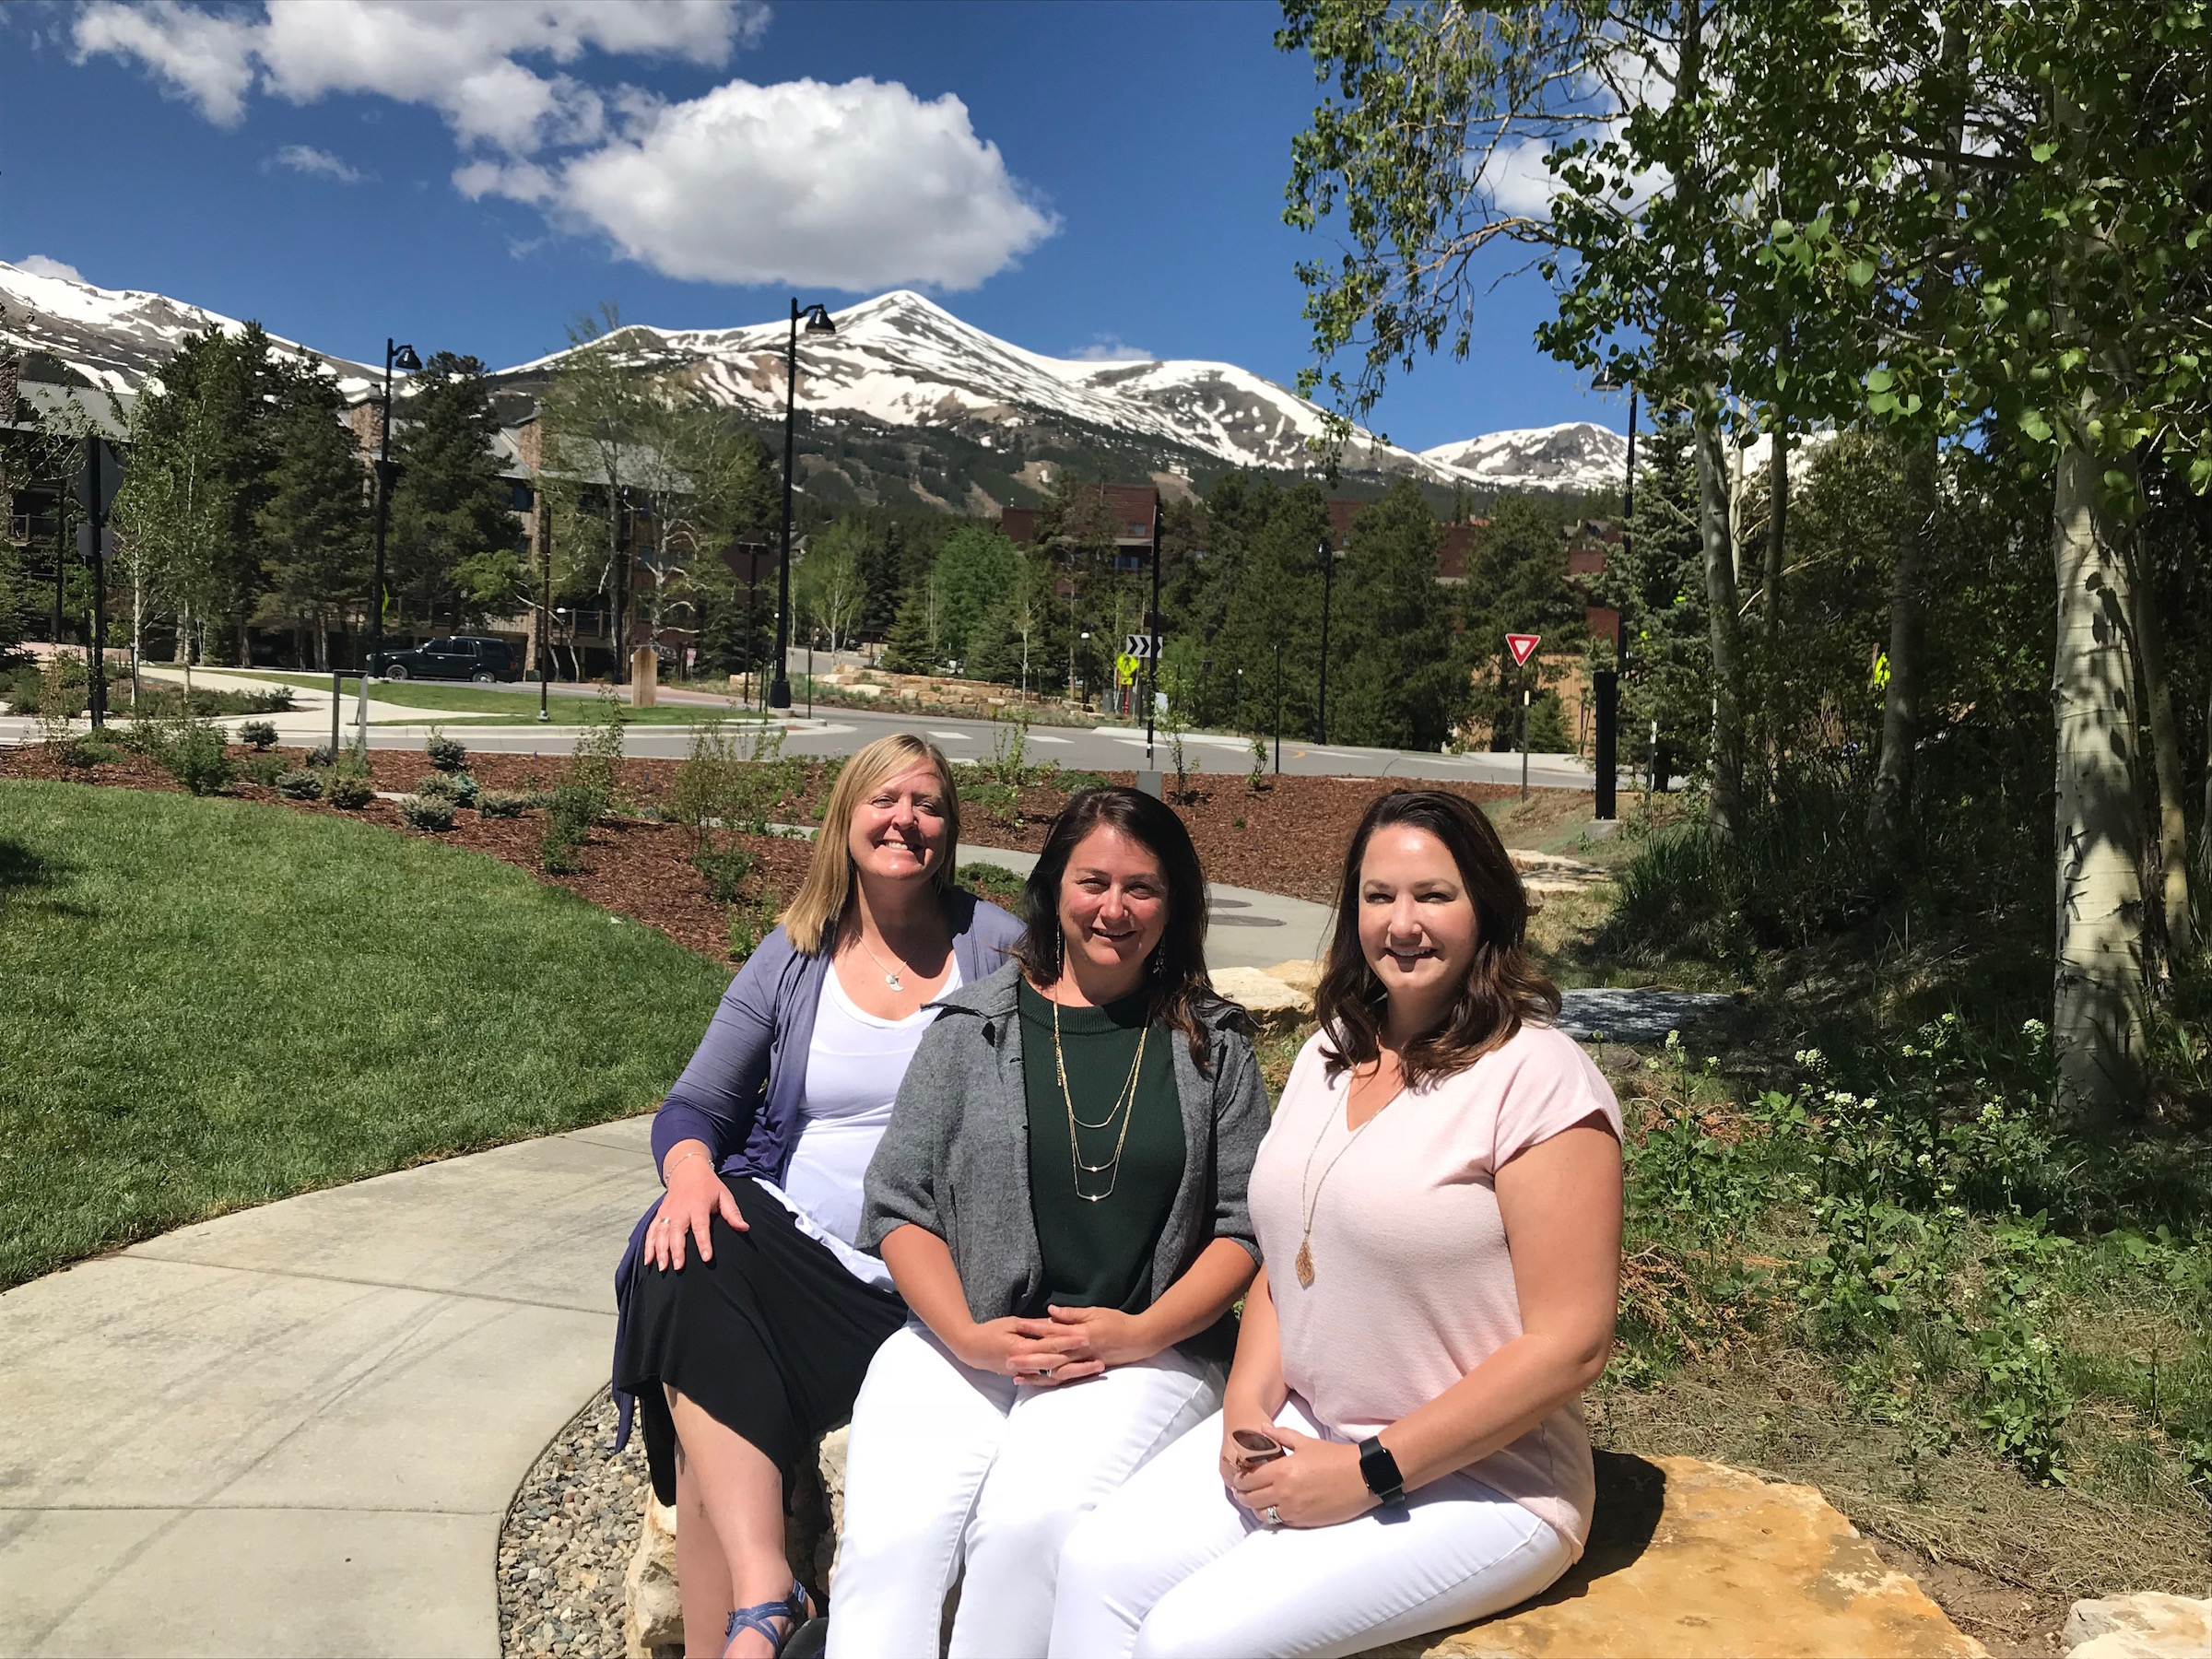 anna faulk and team incline business essentials breckenridge